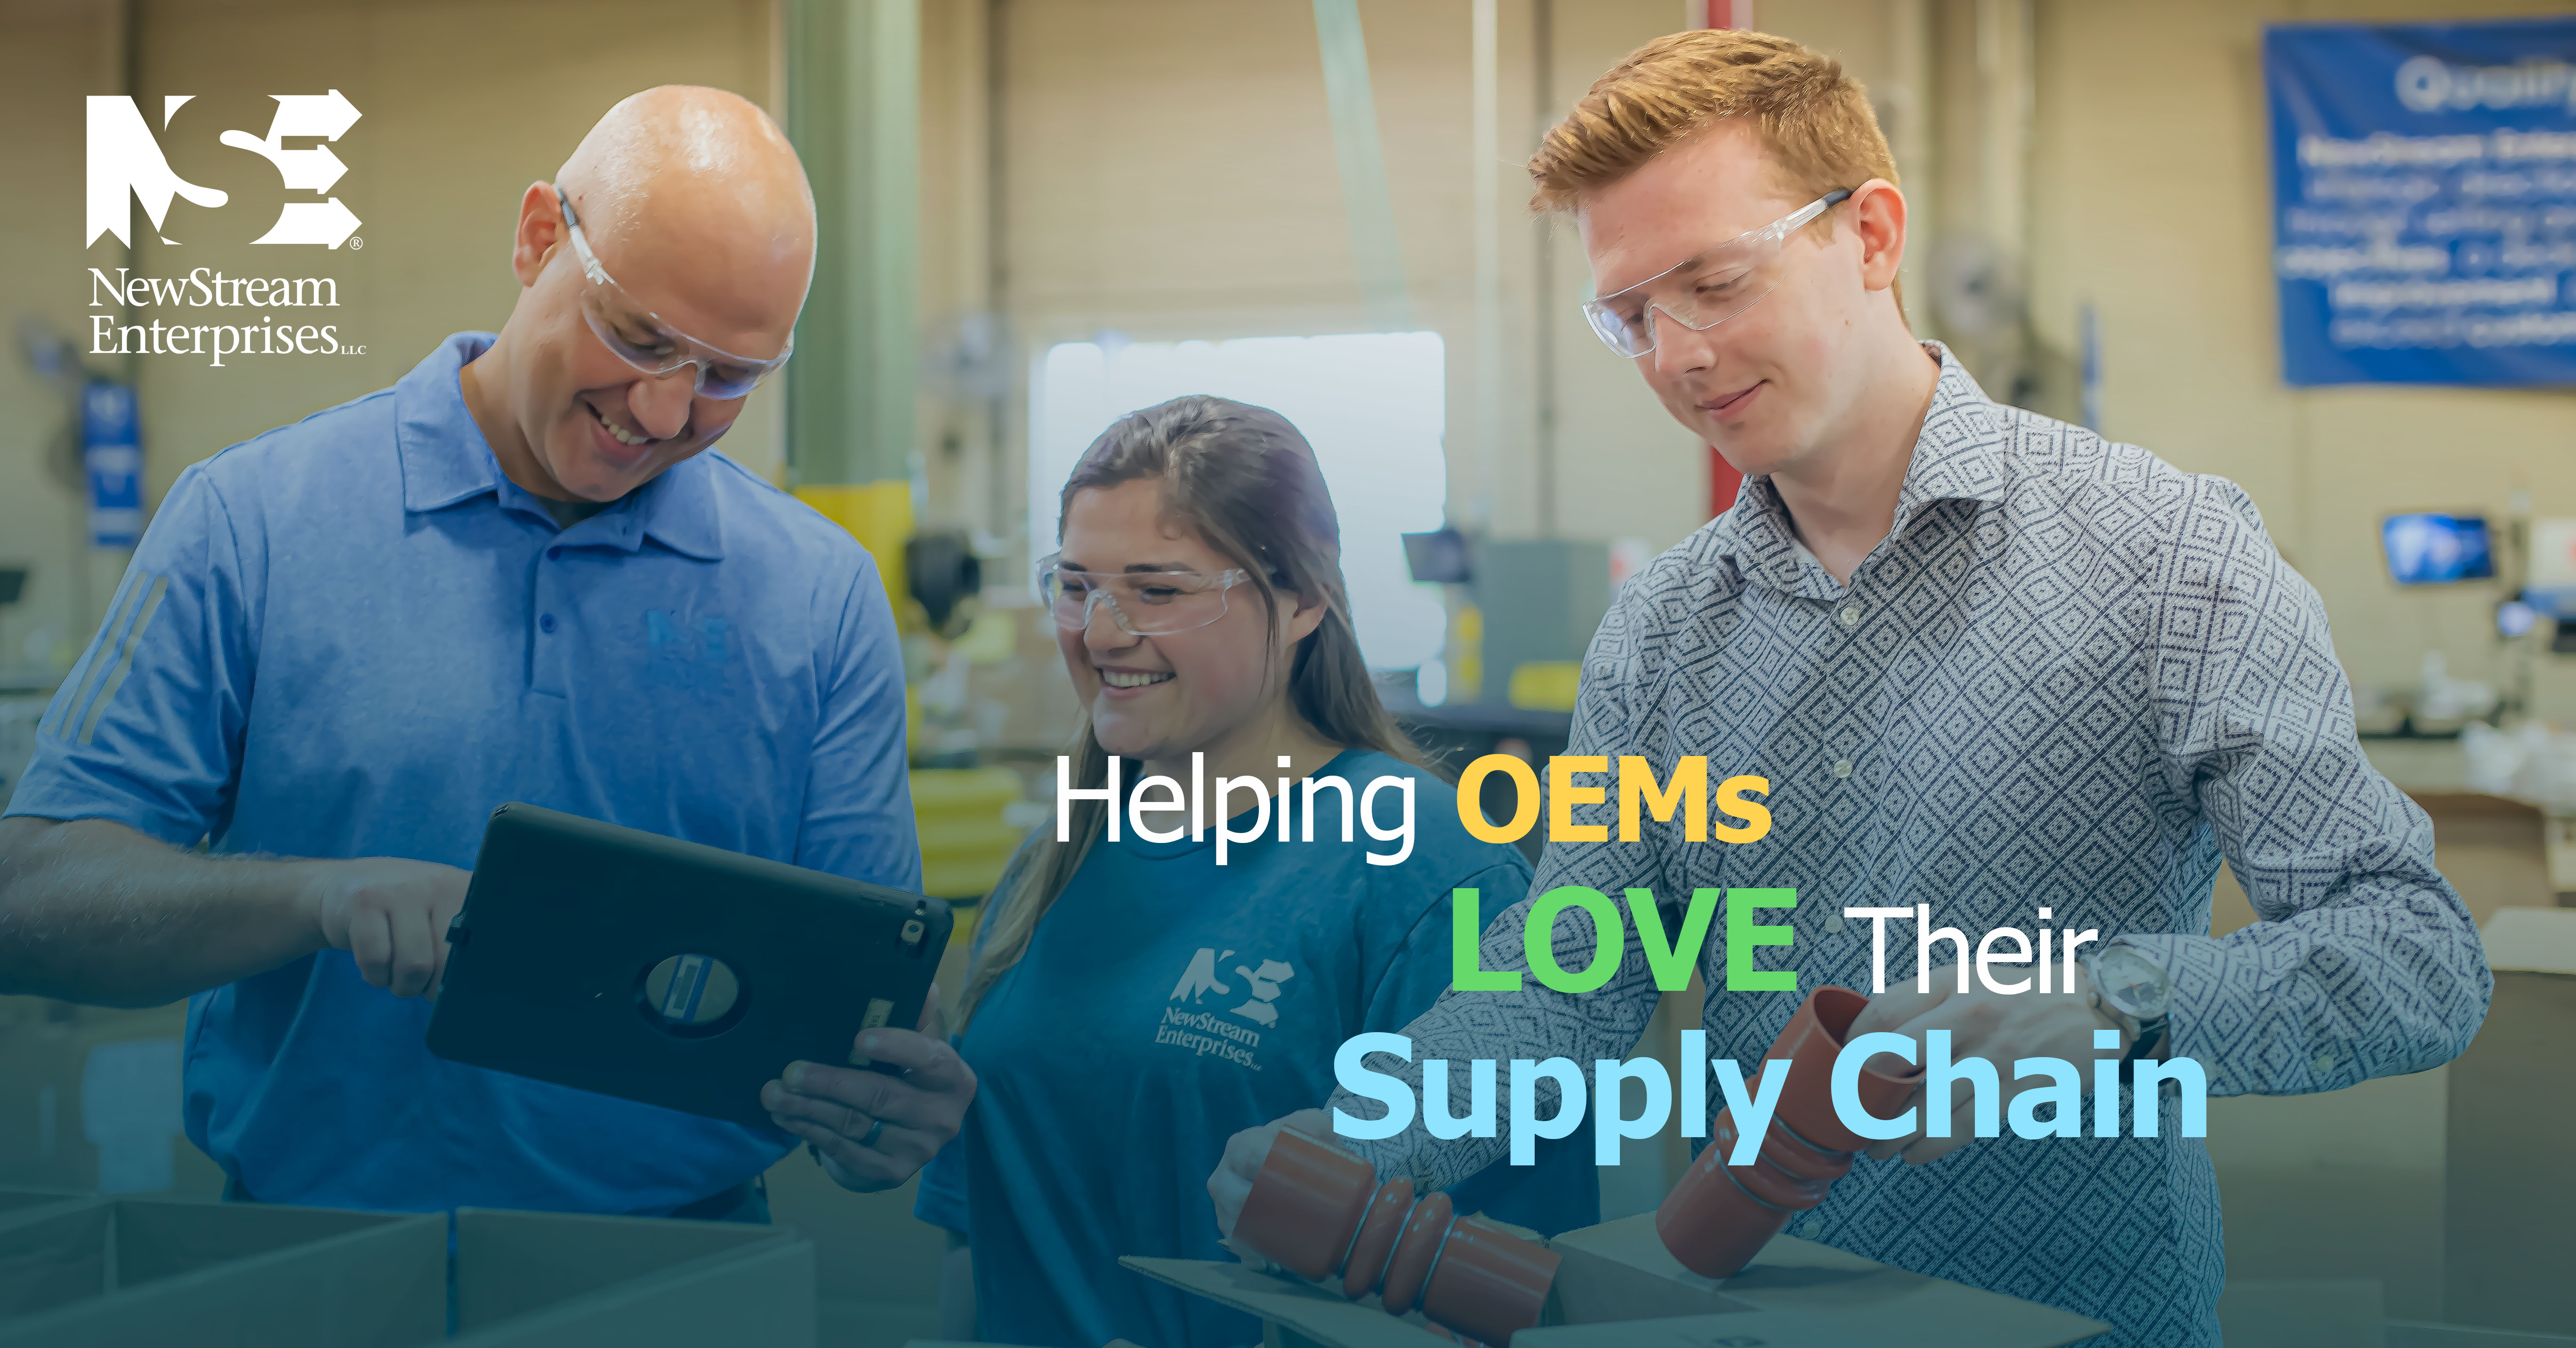 Helping OEMs Love Their Supply Chain